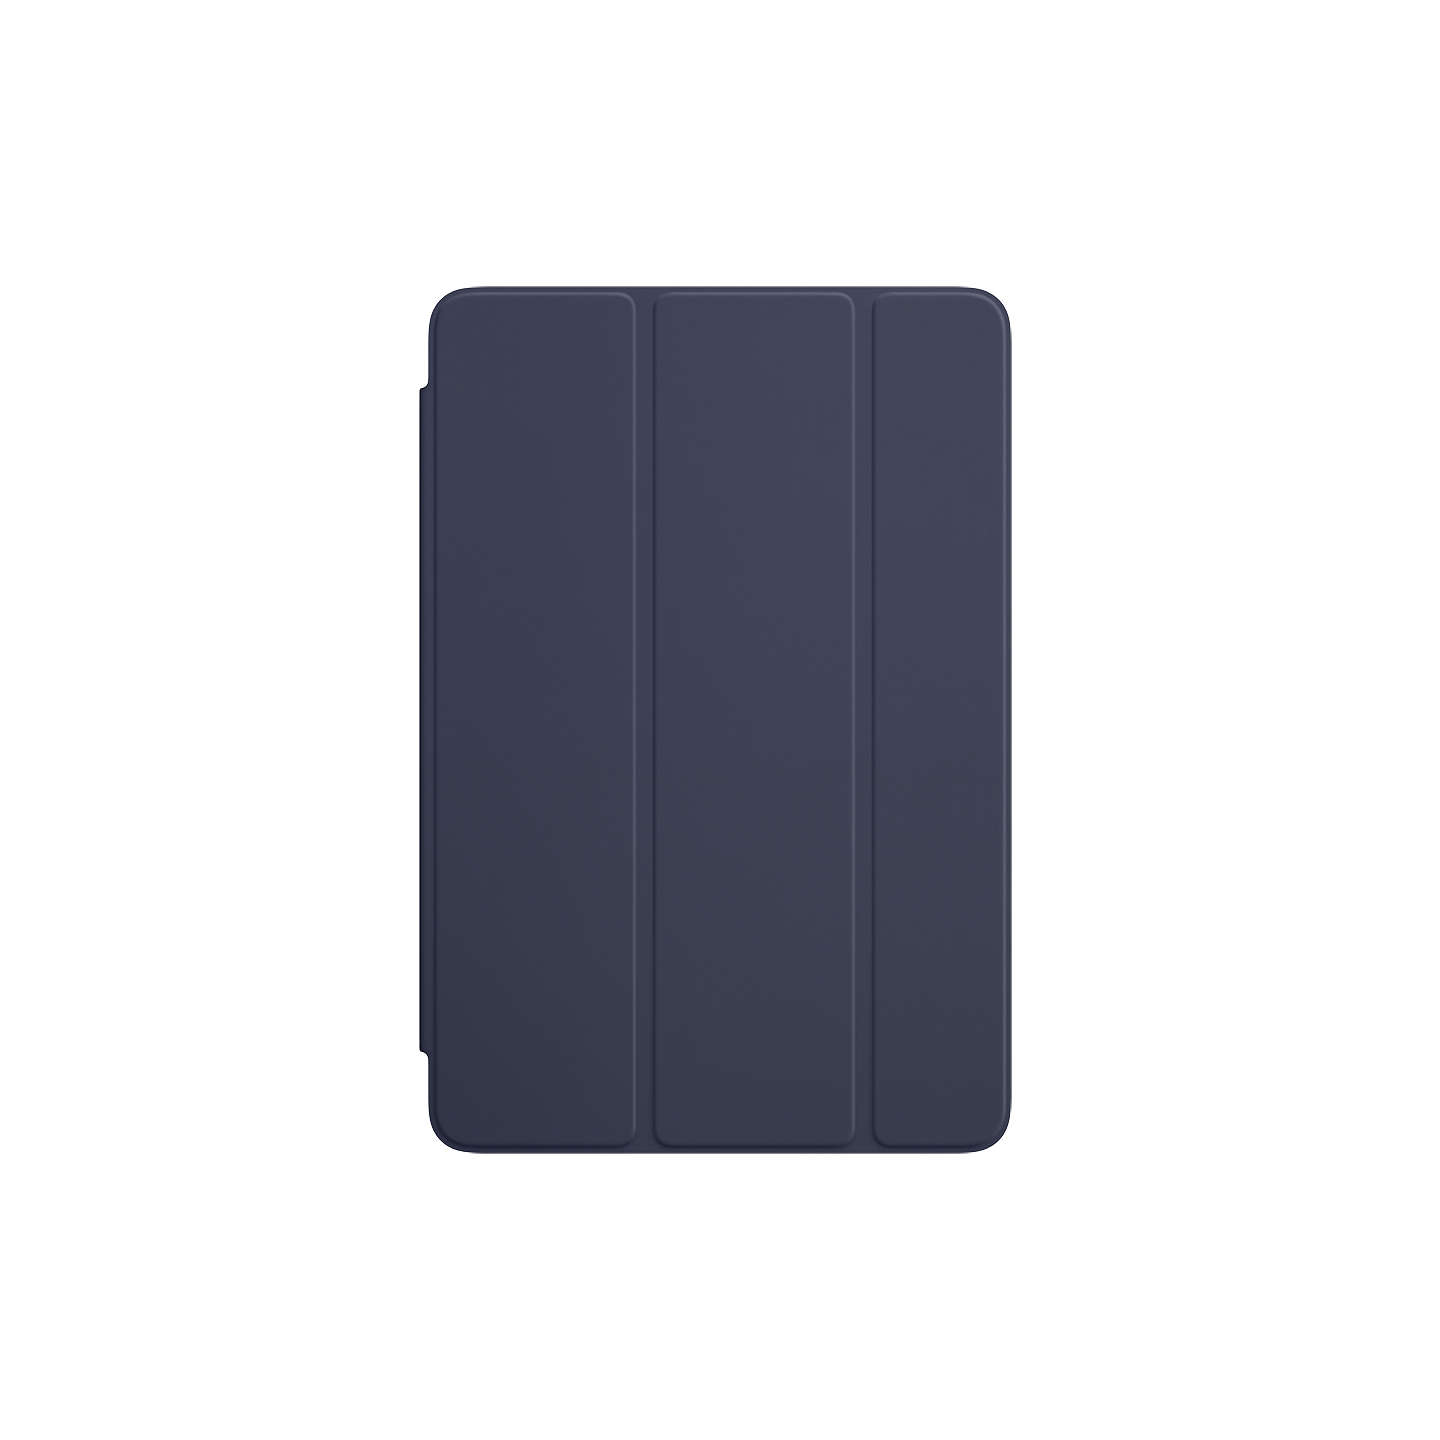 BuyApple Smart Cover for iPad mini 4, Navy Online at johnlewis.com